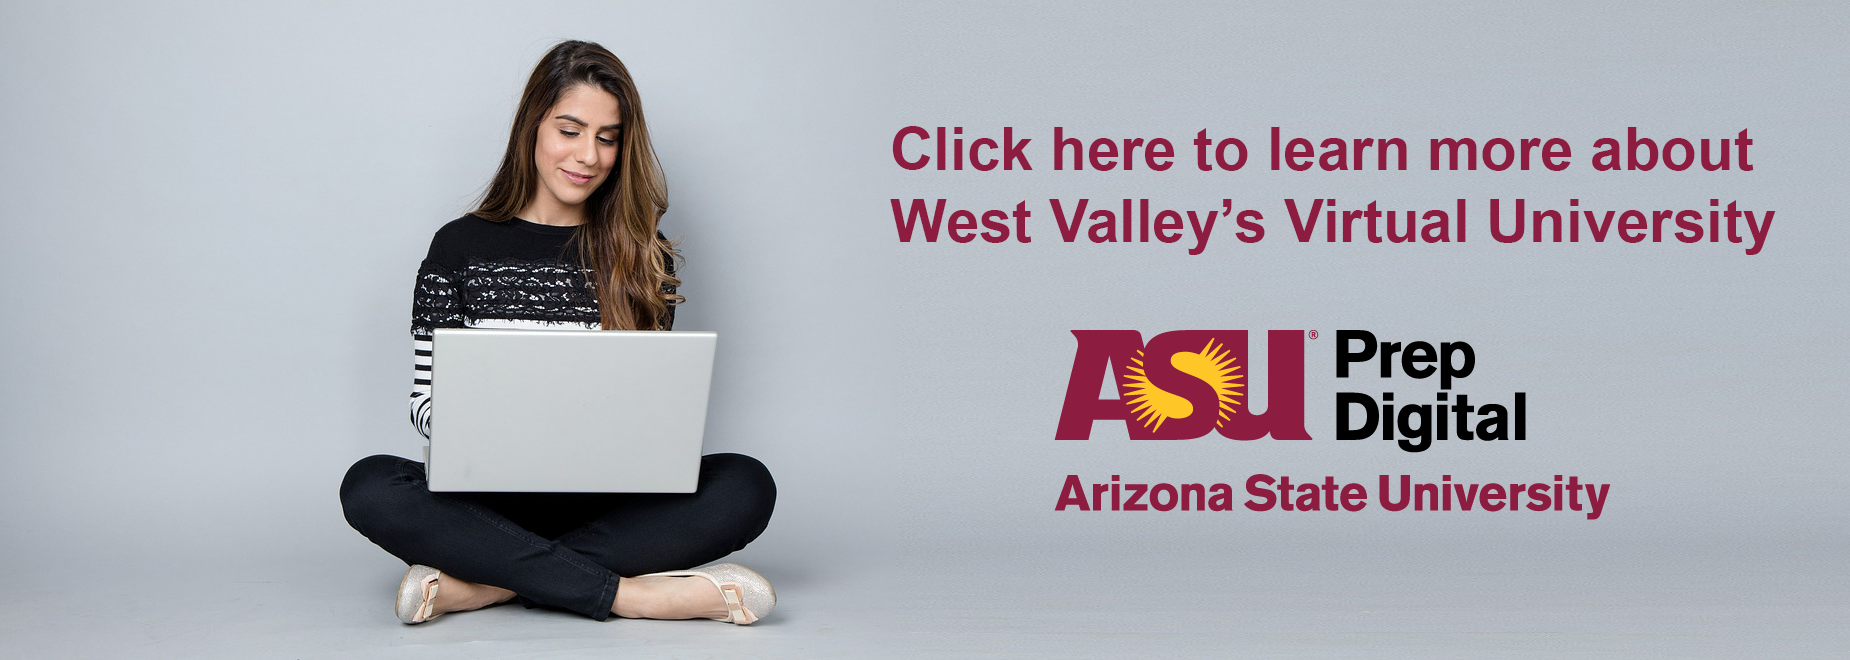 Click here to learn more about West Valley's Virtual University. ASU Prep Digital. Arizona State University.